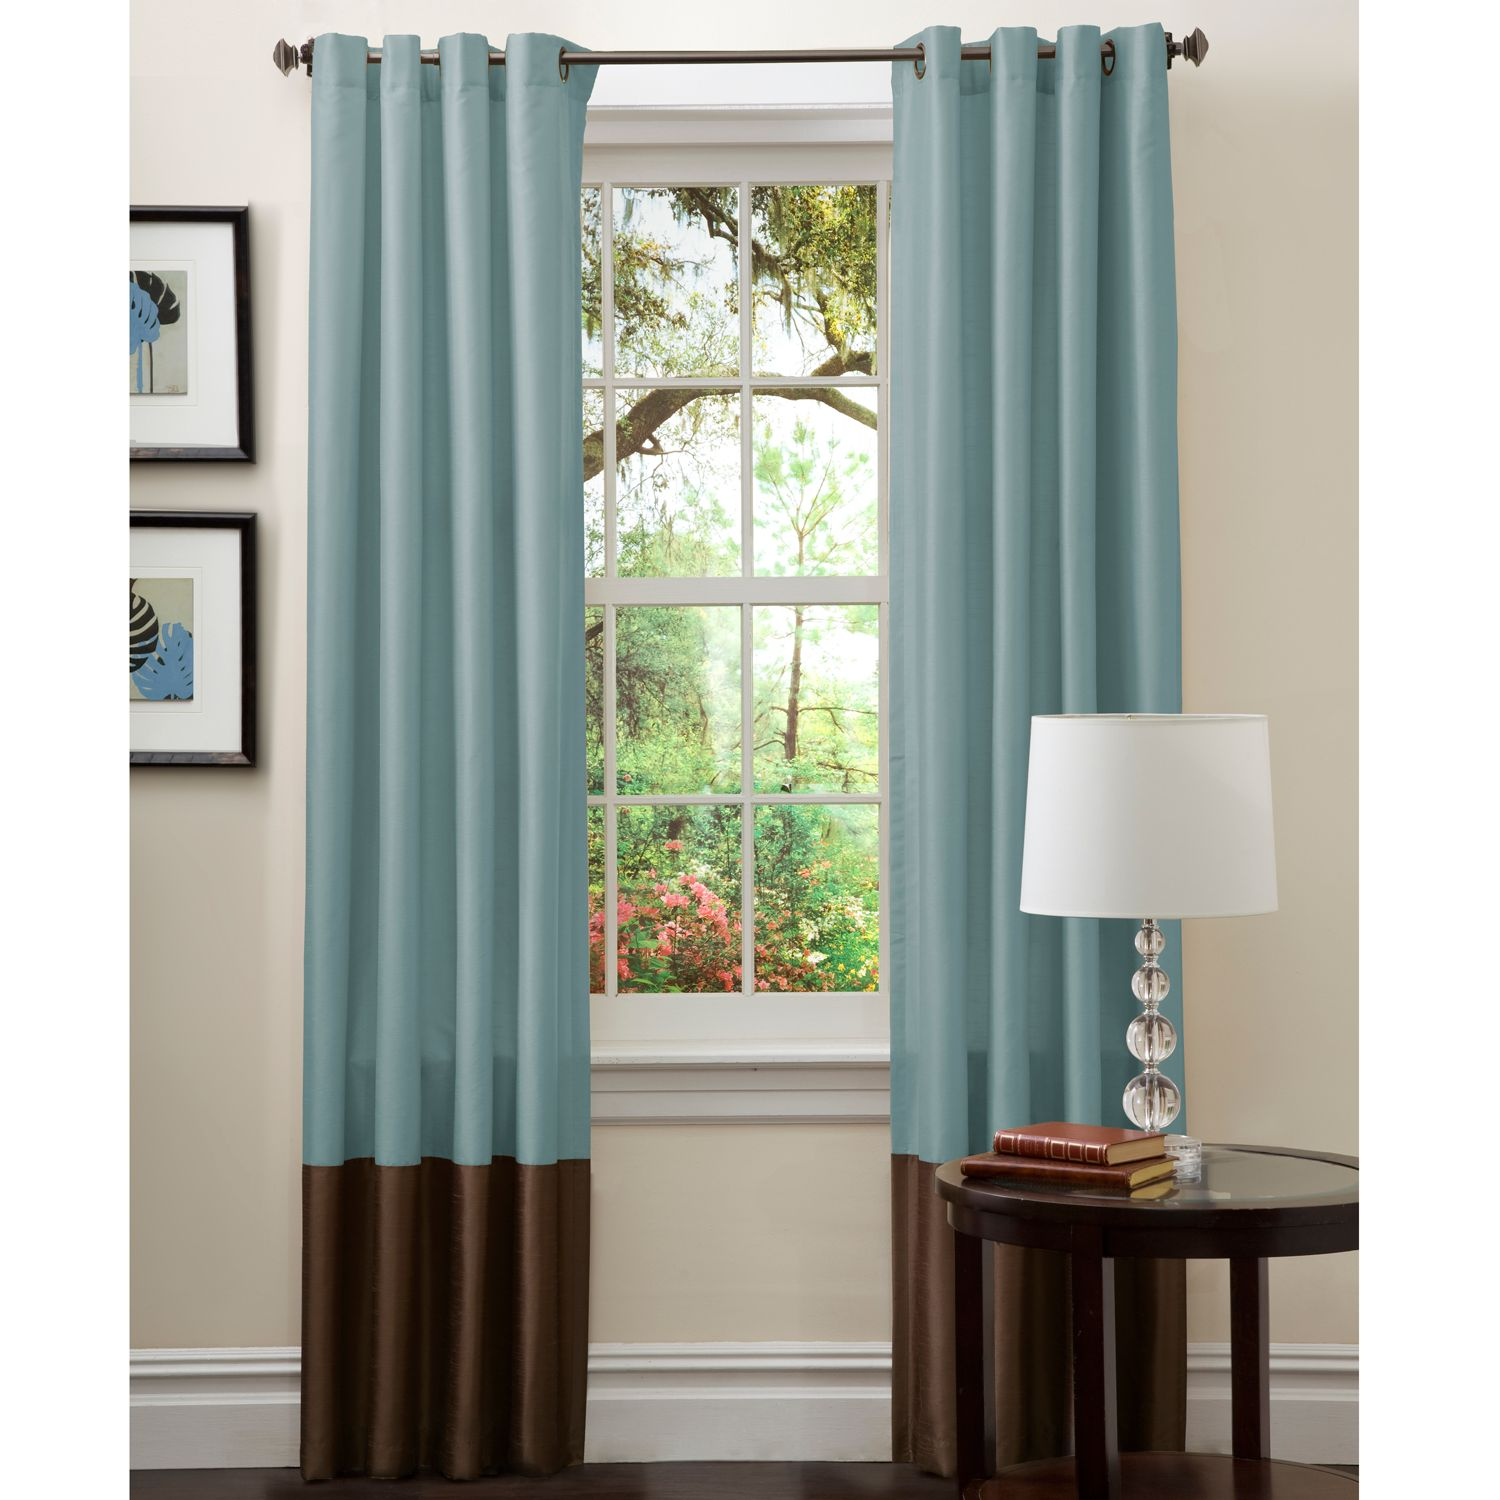 lush decor serena window curtain by lush decor curtains flower drops federal blue and white shower